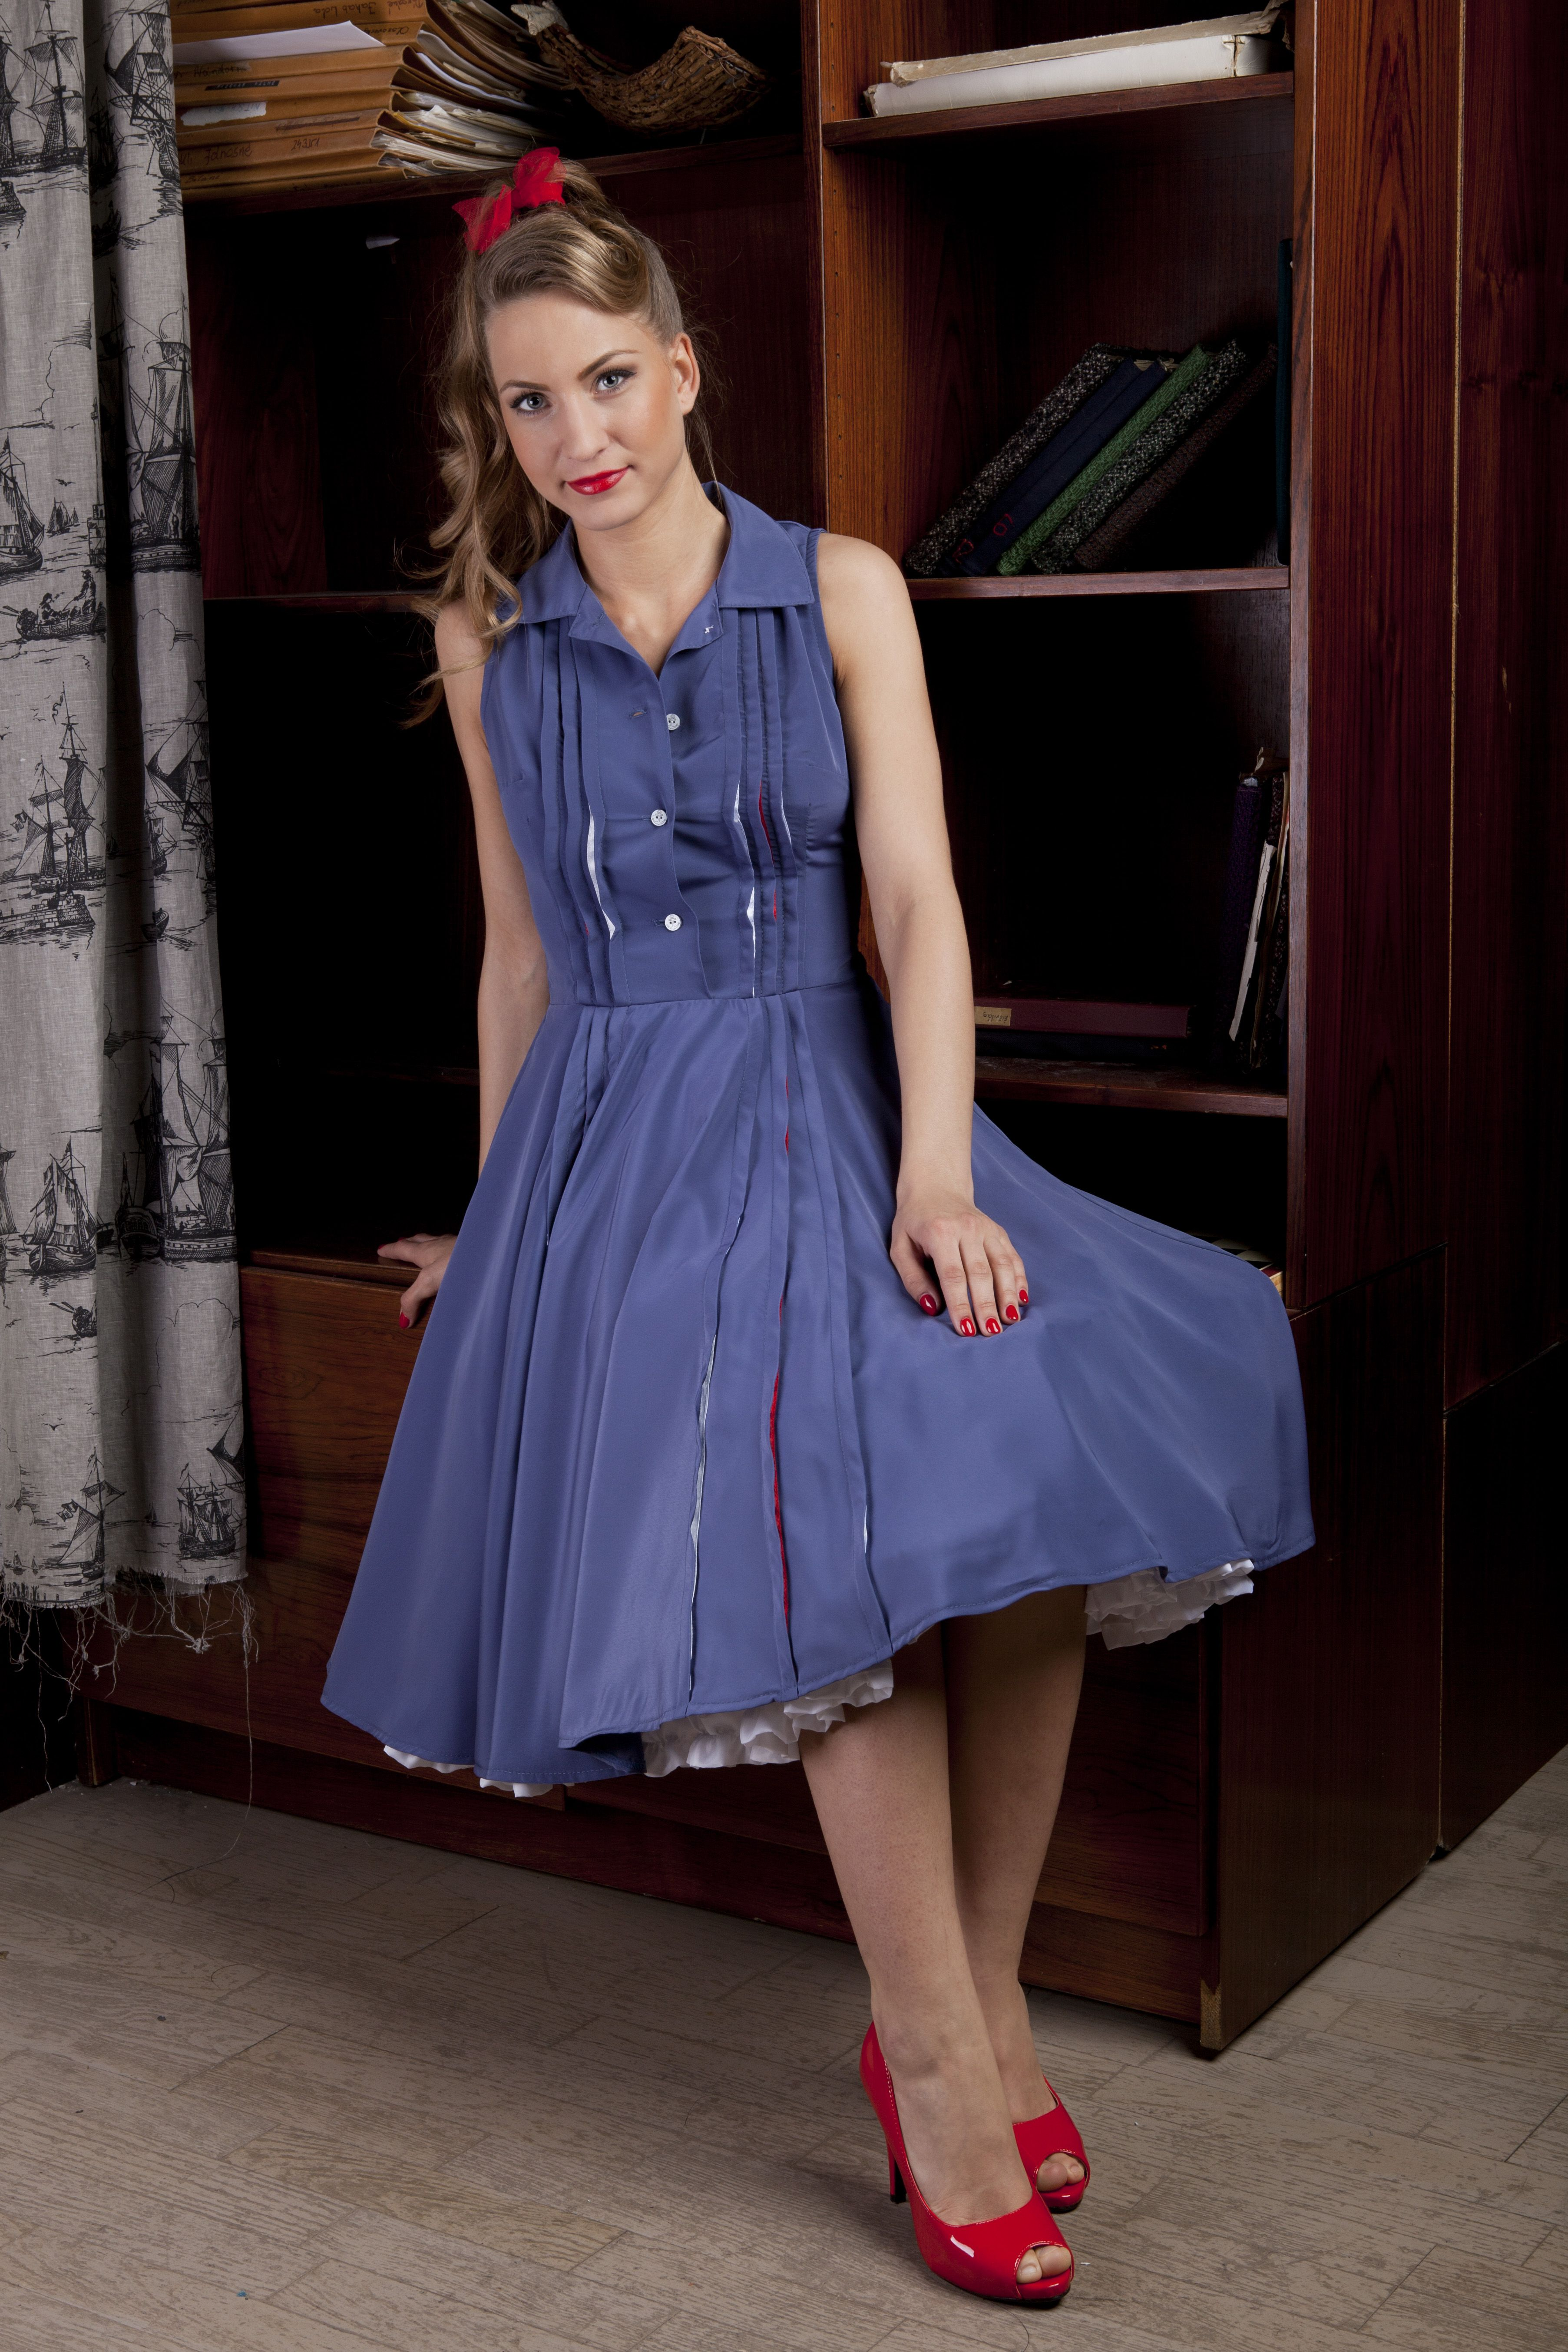 cry baby Alison good girl dress rockabilly dress fifites style ...